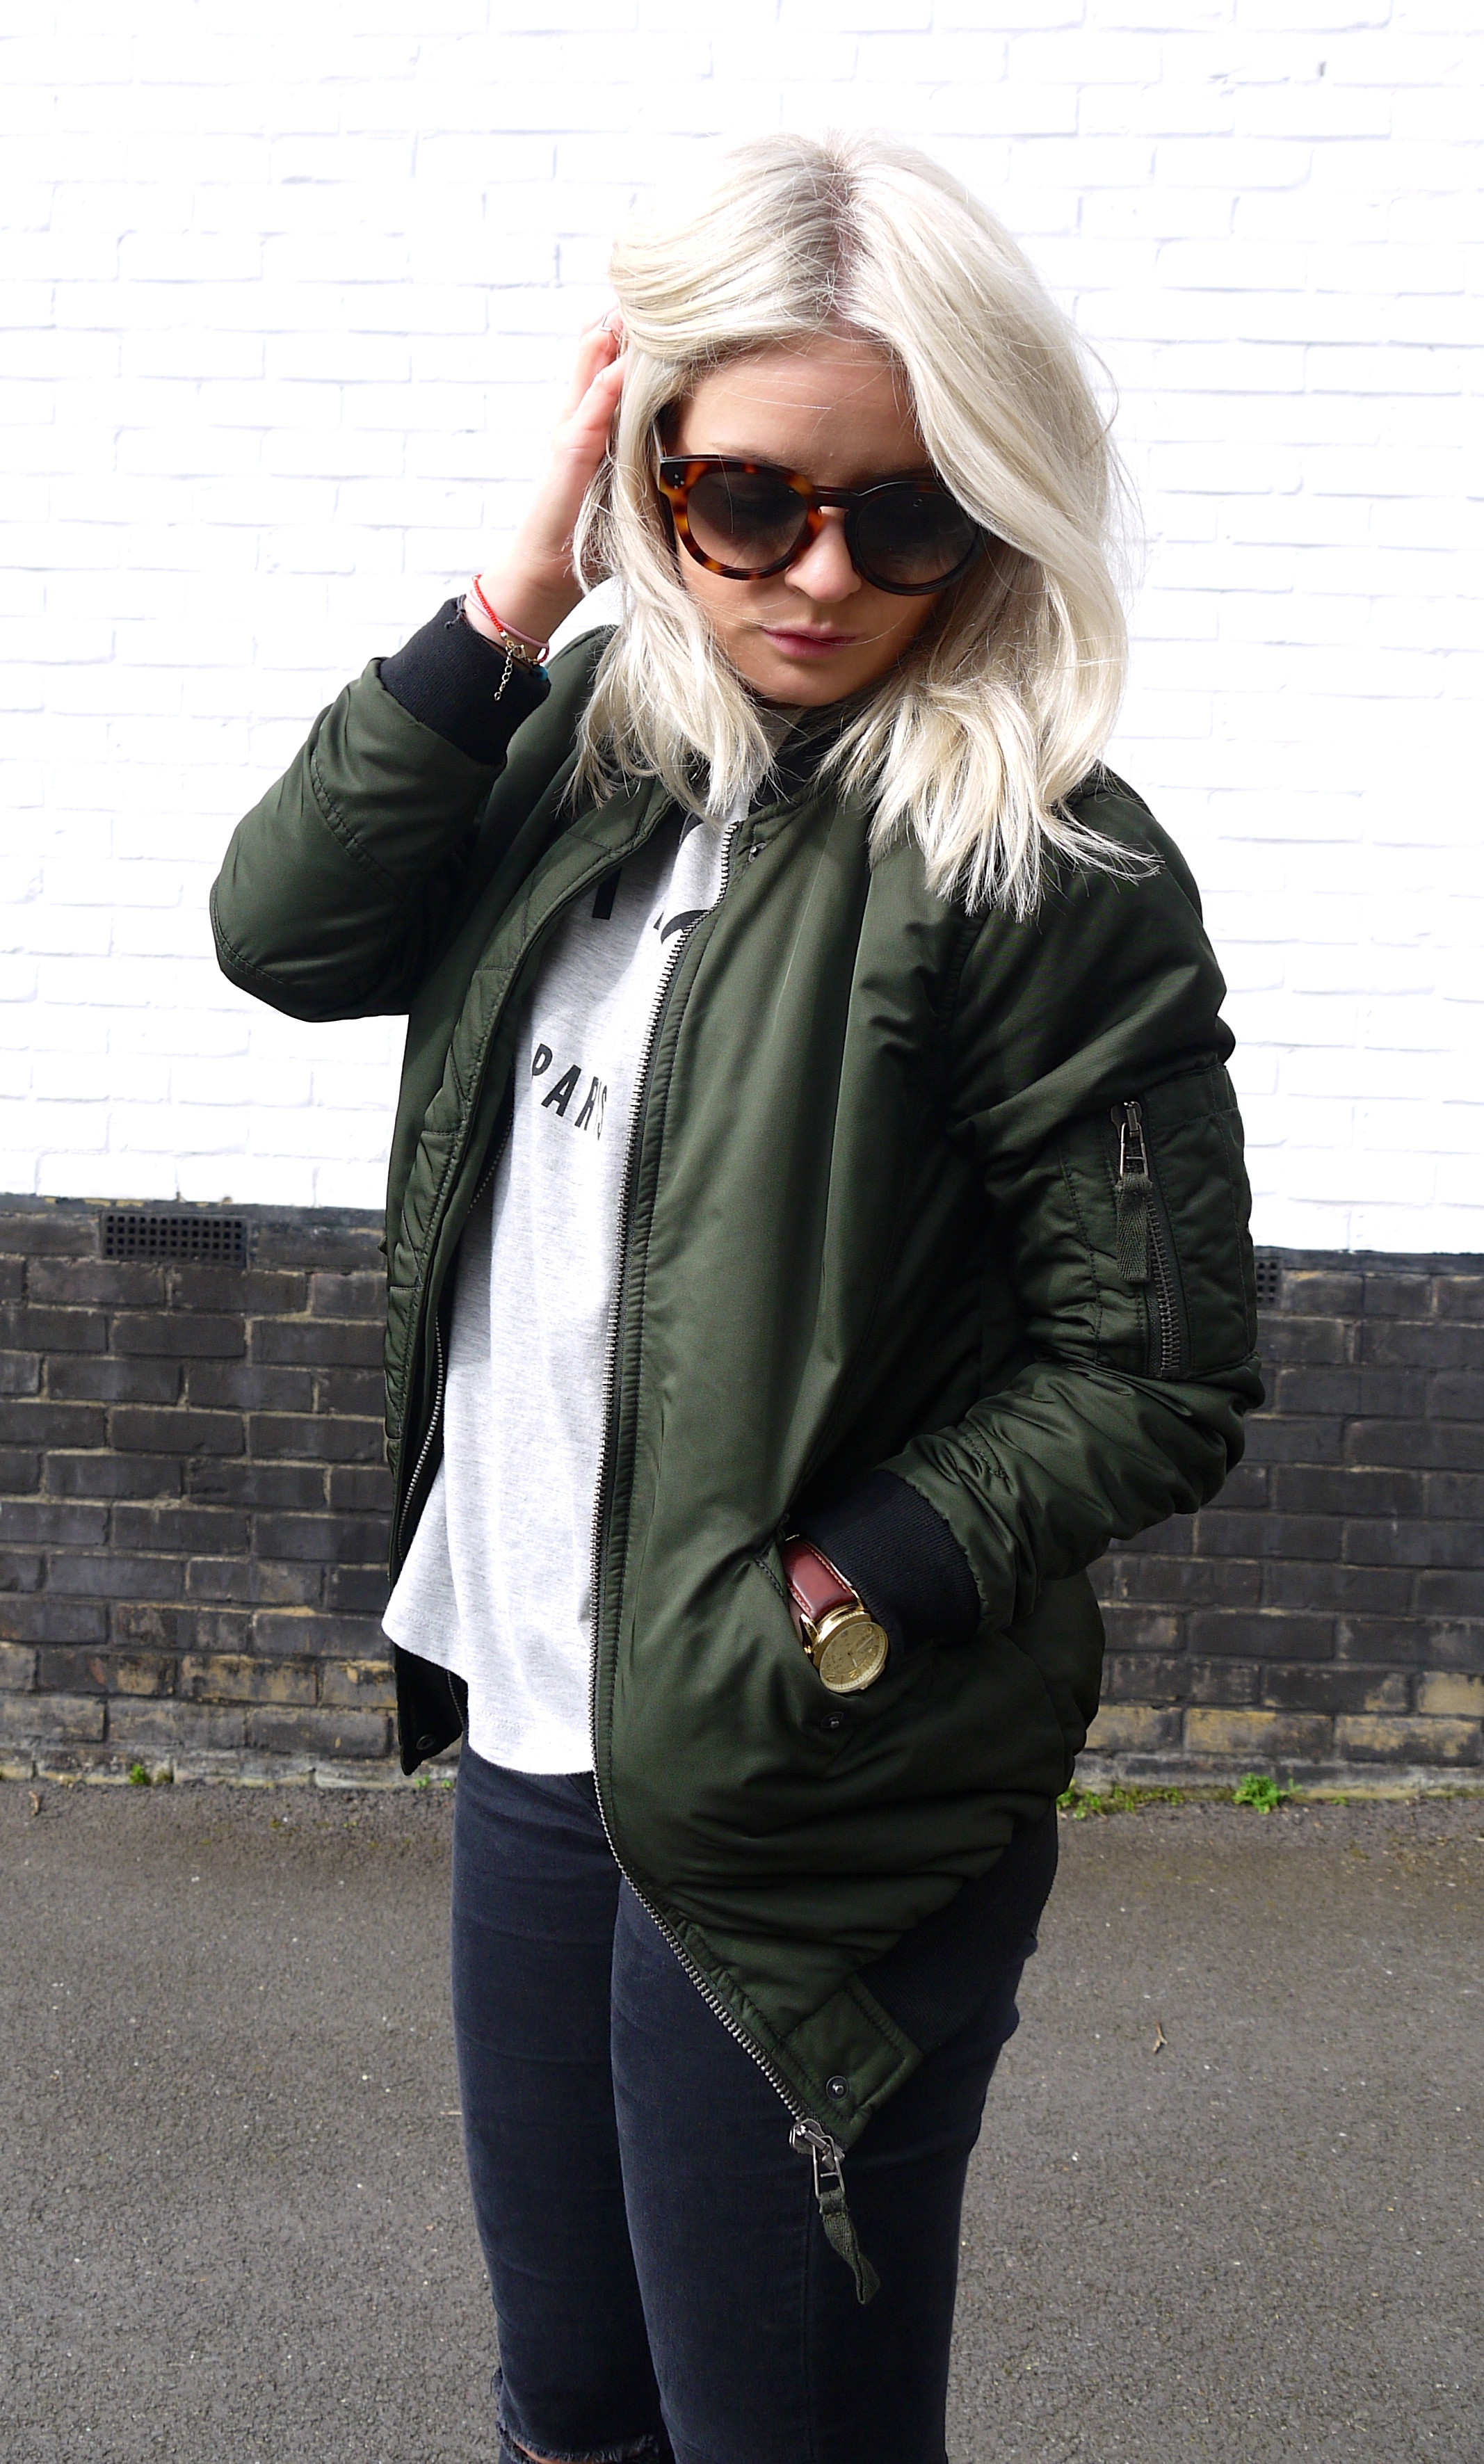 cest la vie, tea and cake, khaki bomber jacket, asos bomber jacket, celine sunglasses, ash blonde hair